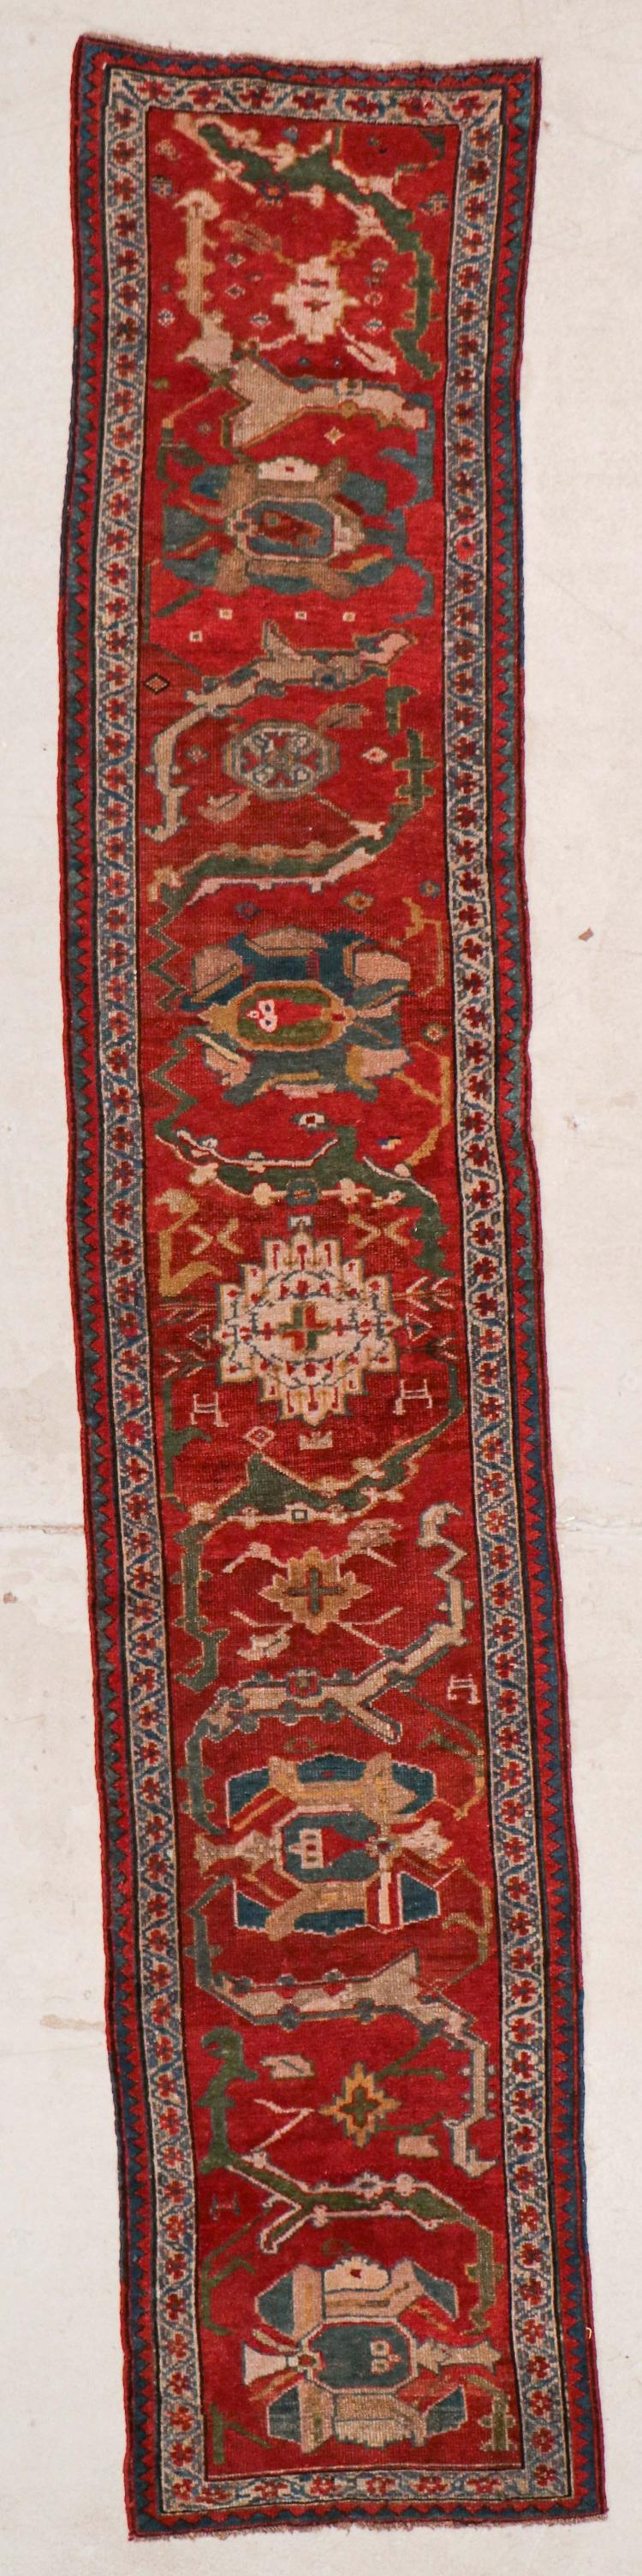 Antique West Persian Rug: 2'2